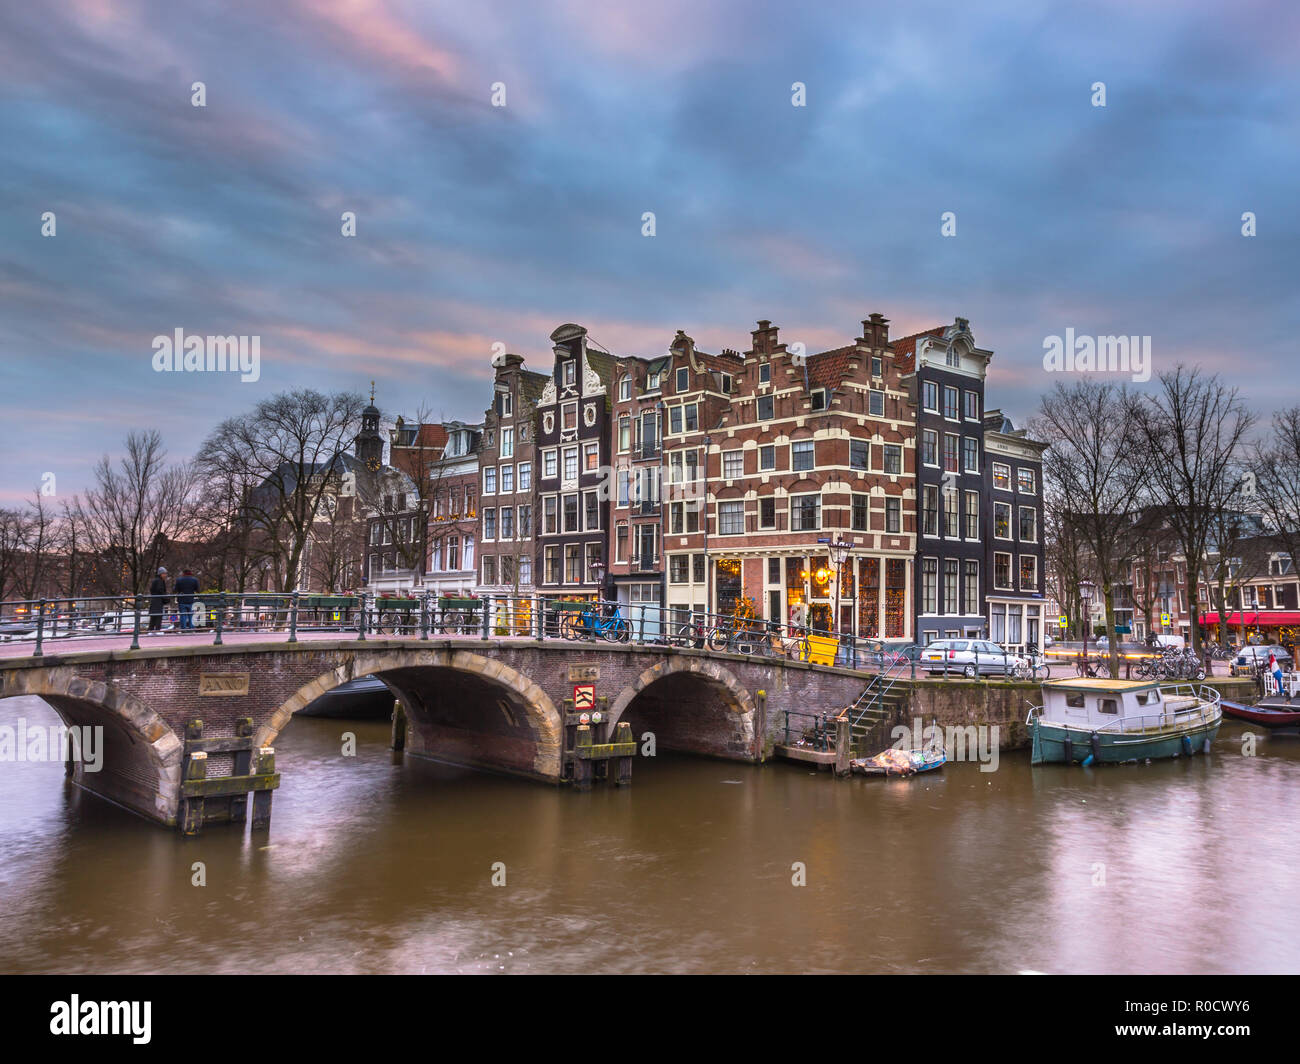 Colorful traditional canal houses on the corner of brouwersgracht and Prinsengracht in the UNESCO World Heritage site of Amsterdam - Stock Image